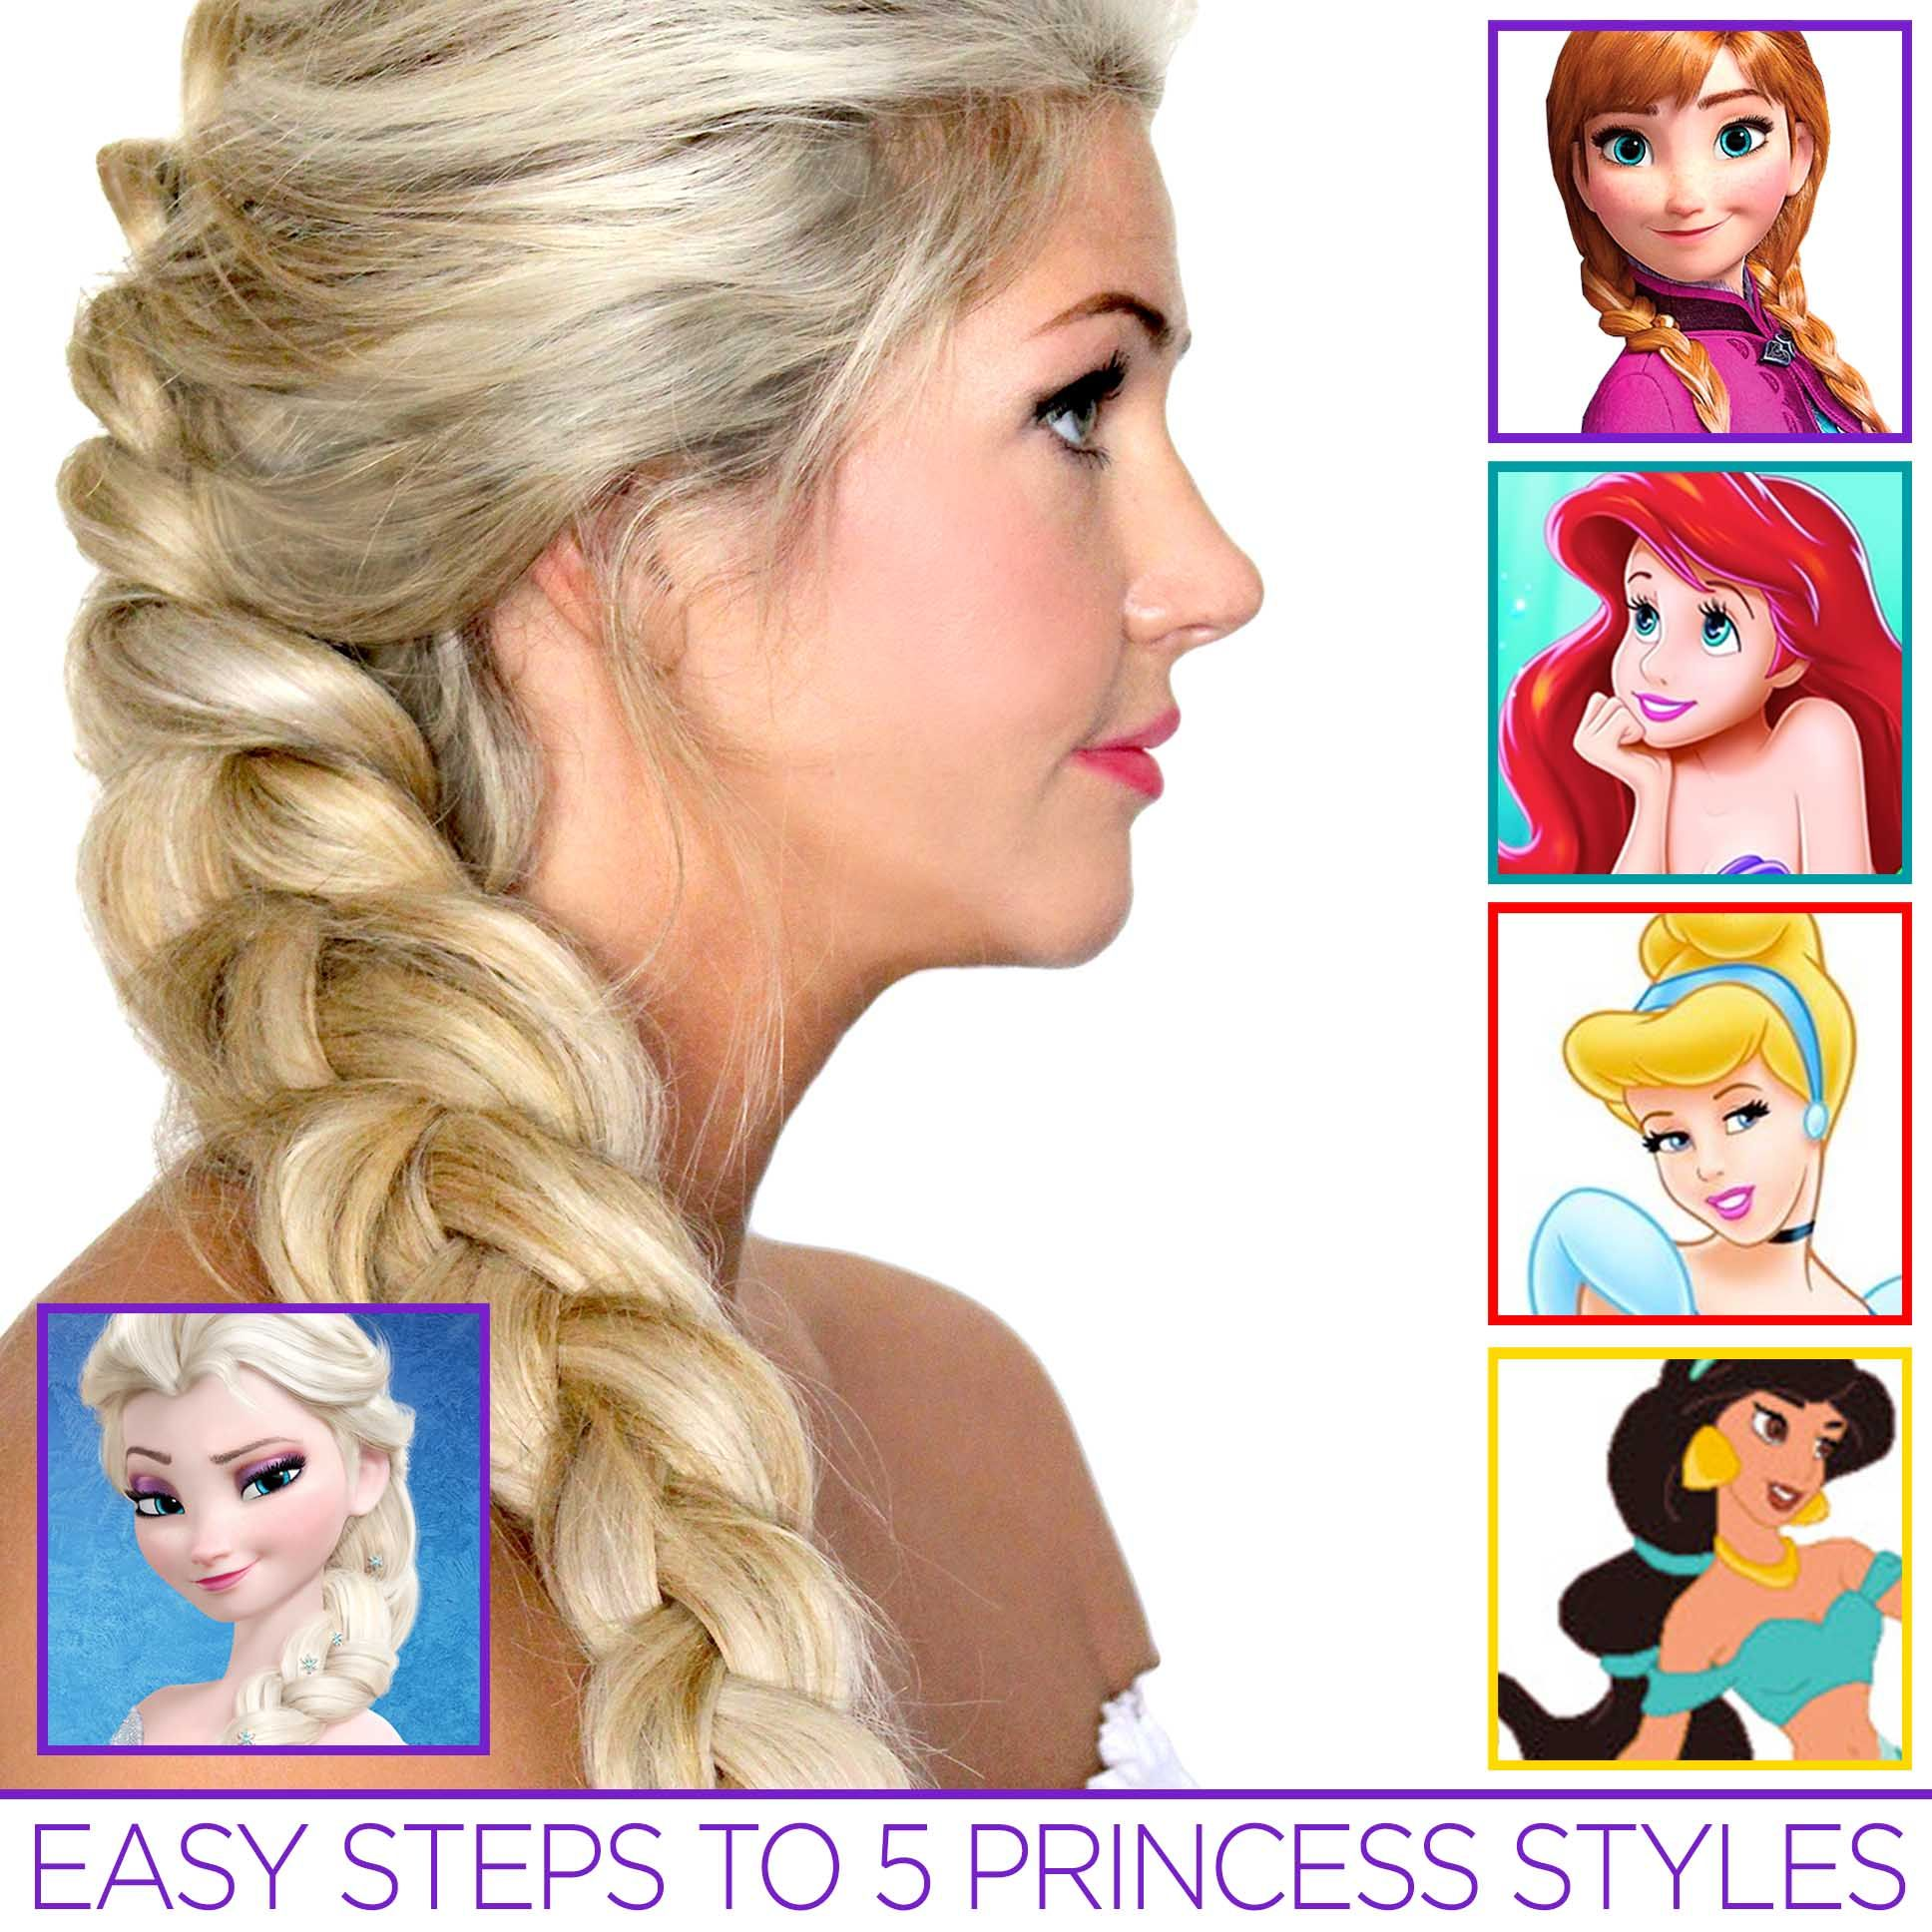 5 easy princess hair tutorials #disney #princess #hairstyle